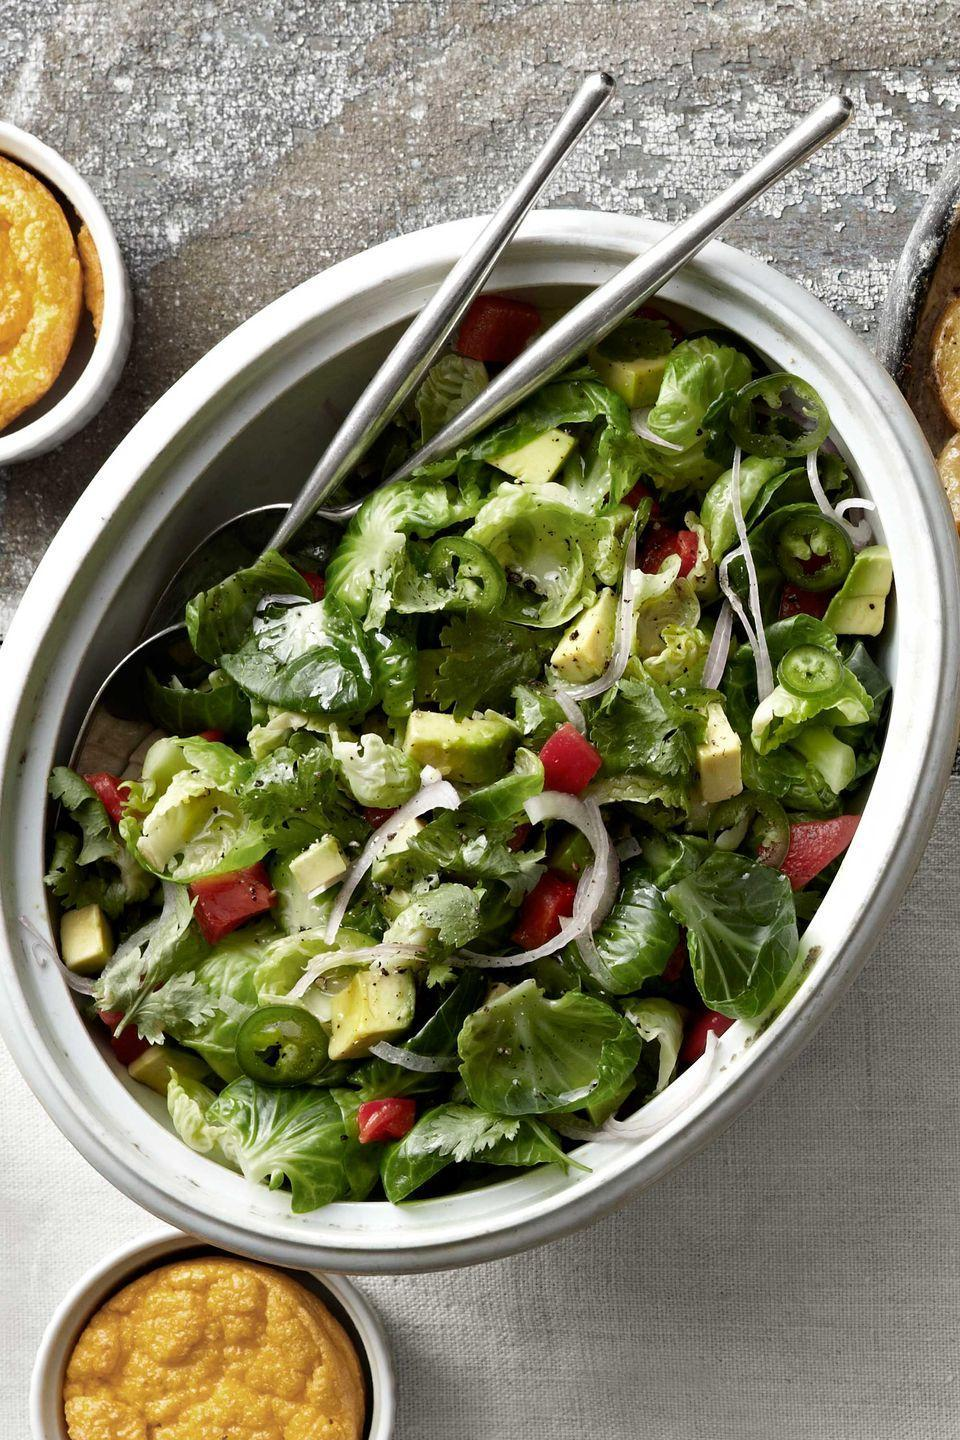 "<p class=""imageContent"">Try something new with Brussels sprouts, like this salad from Marvin Woods, chef and author of <a href=""http://www.amazon.com/Home-Plate-Cooking-Everyday-Southern/dp/1401602029?tag=syn-yahoo-20&ascsubtag=%5Bartid%7C10050.g.896%5Bsrc%7Cyahoo-us"" rel=""nofollow noopener"" target=""_blank"" data-ylk=""slk:Home Plate Cooking"" class=""link rapid-noclick-resp""><em>Home Plate Cooking</em></a>. Add red onion, cilantro, peppers, avocado, and dressing to the little cabbages.</p><p class=""imageContent""><strong><a href=""https://www.countryliving.com/food-drinks/recipes/a3466/brussels-sprouts-salad-recipe-clv1010/"" rel=""nofollow noopener"" target=""_blank"" data-ylk=""slk:Get the recipe"" class=""link rapid-noclick-resp"">Get the recipe</a>.</strong></p>"